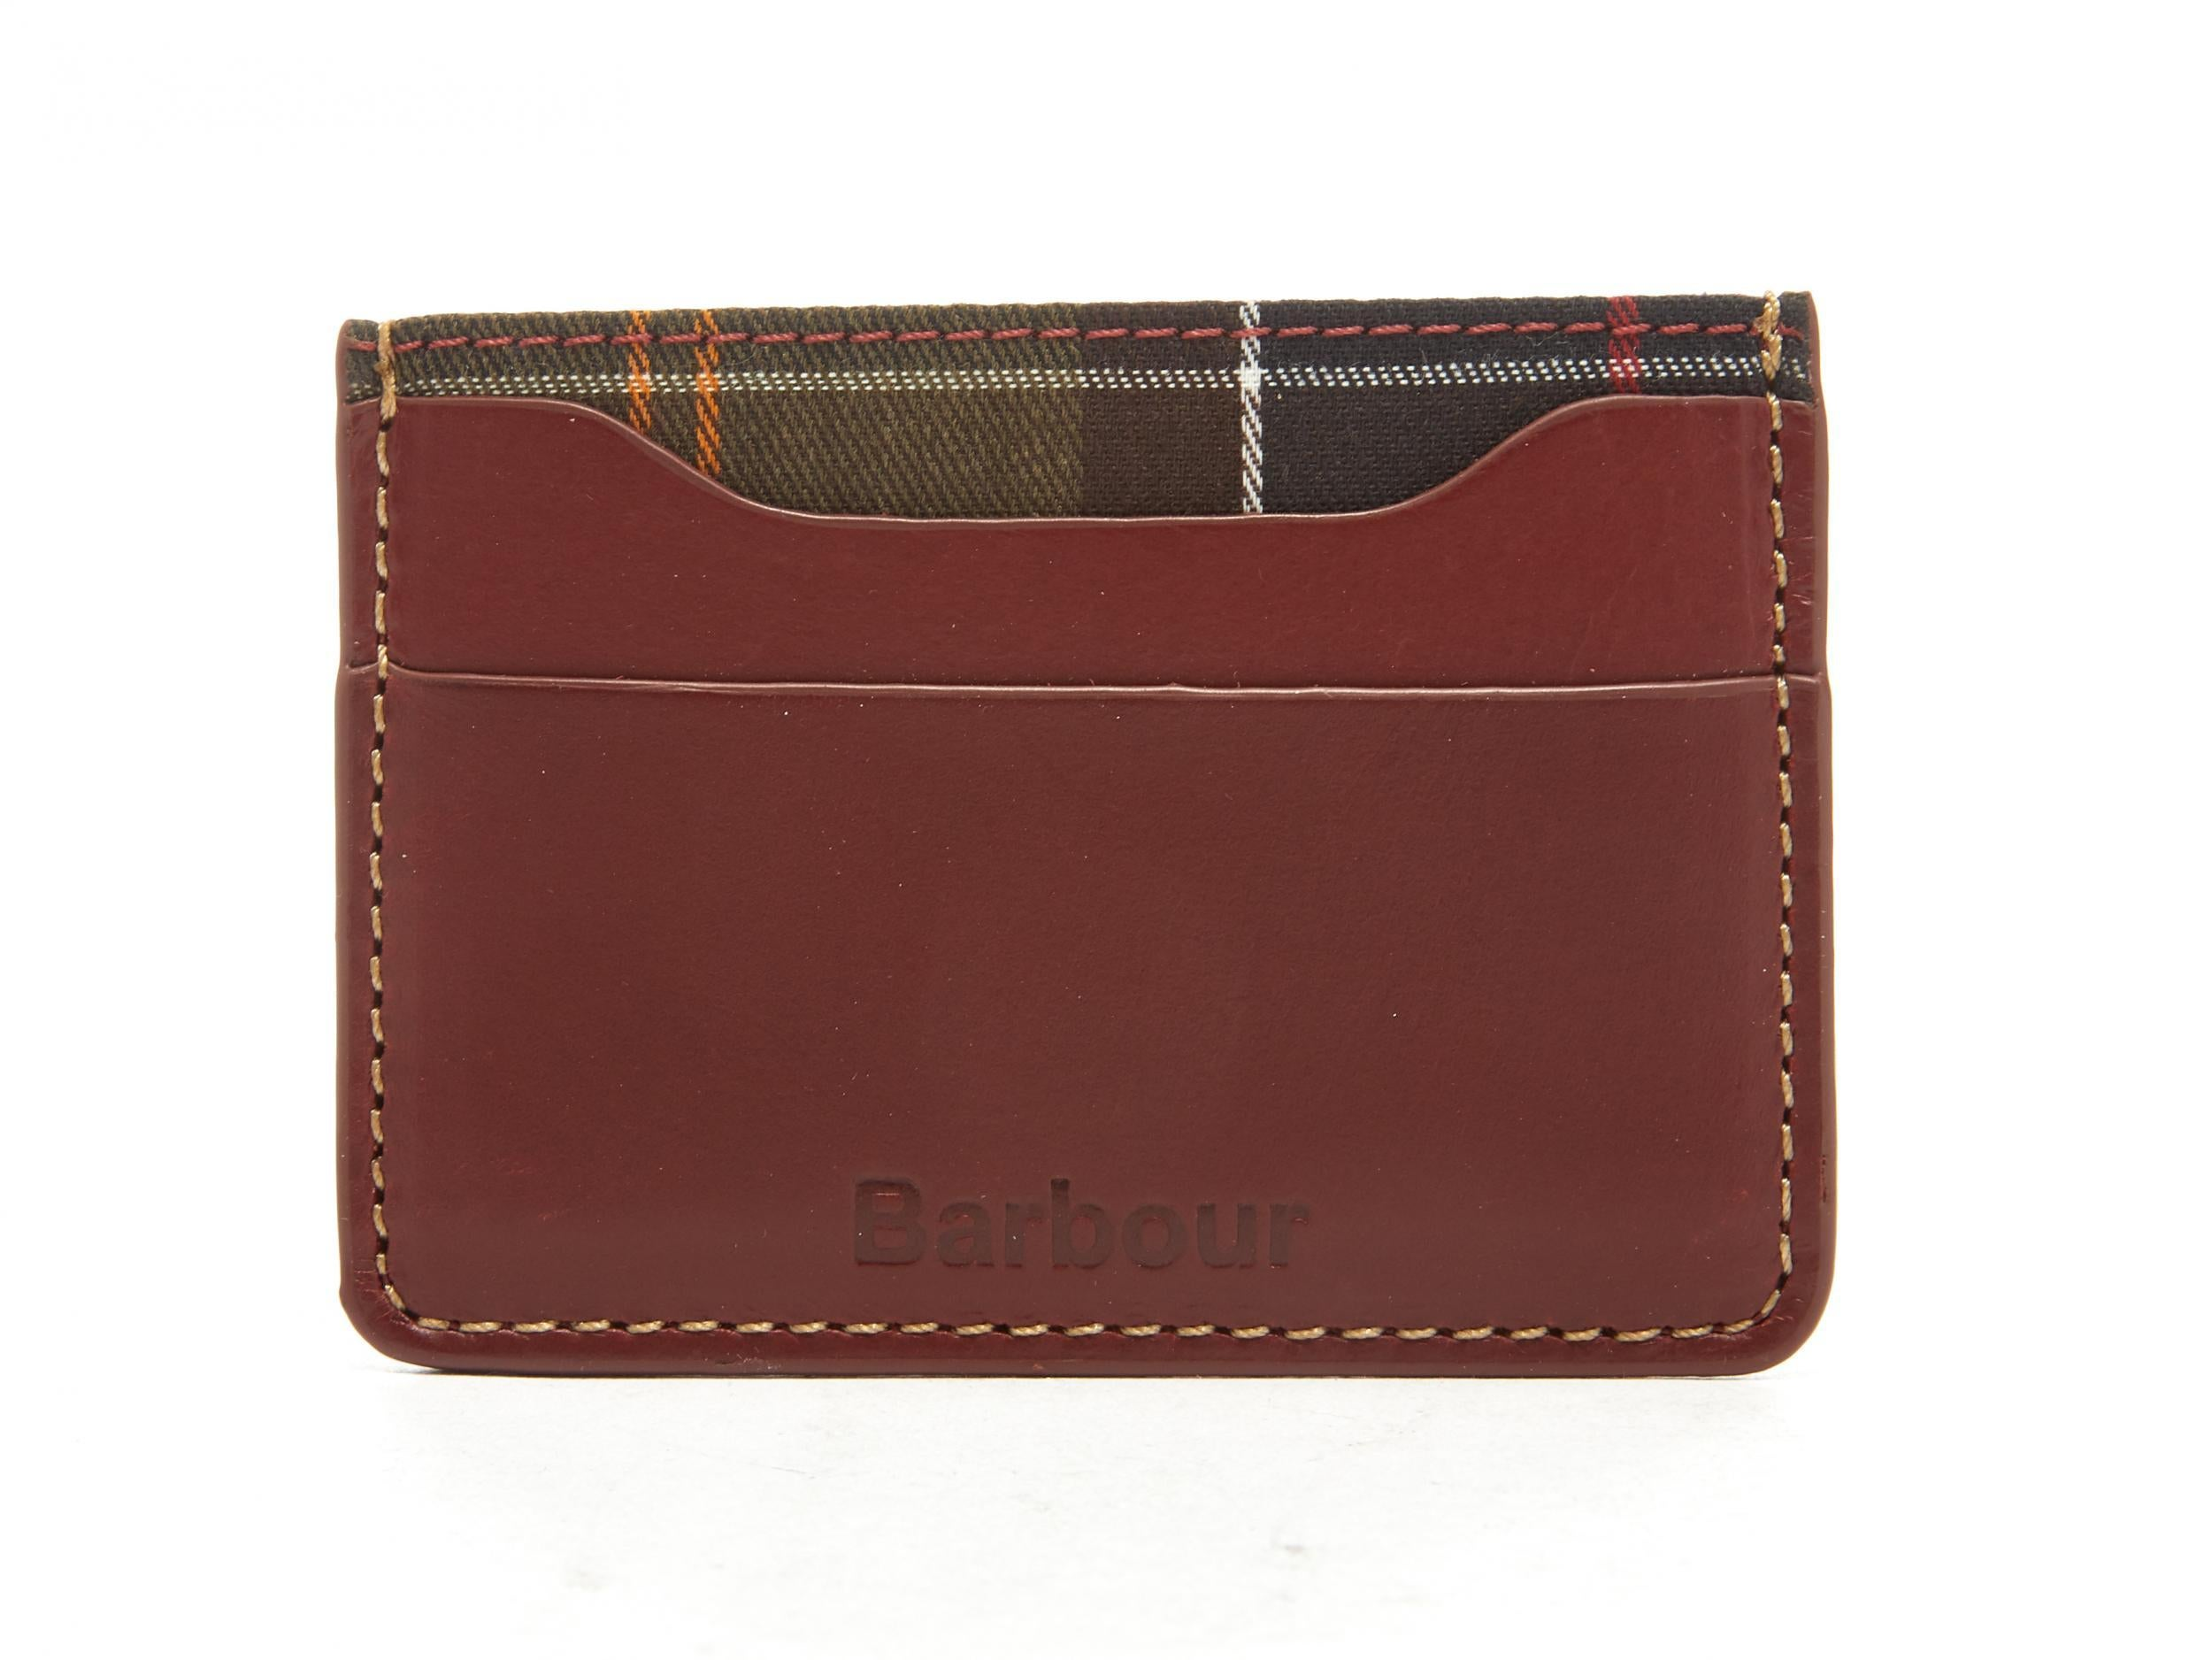 60d6083567f Best men's card holder that carries cash, coins and credit cards in ...